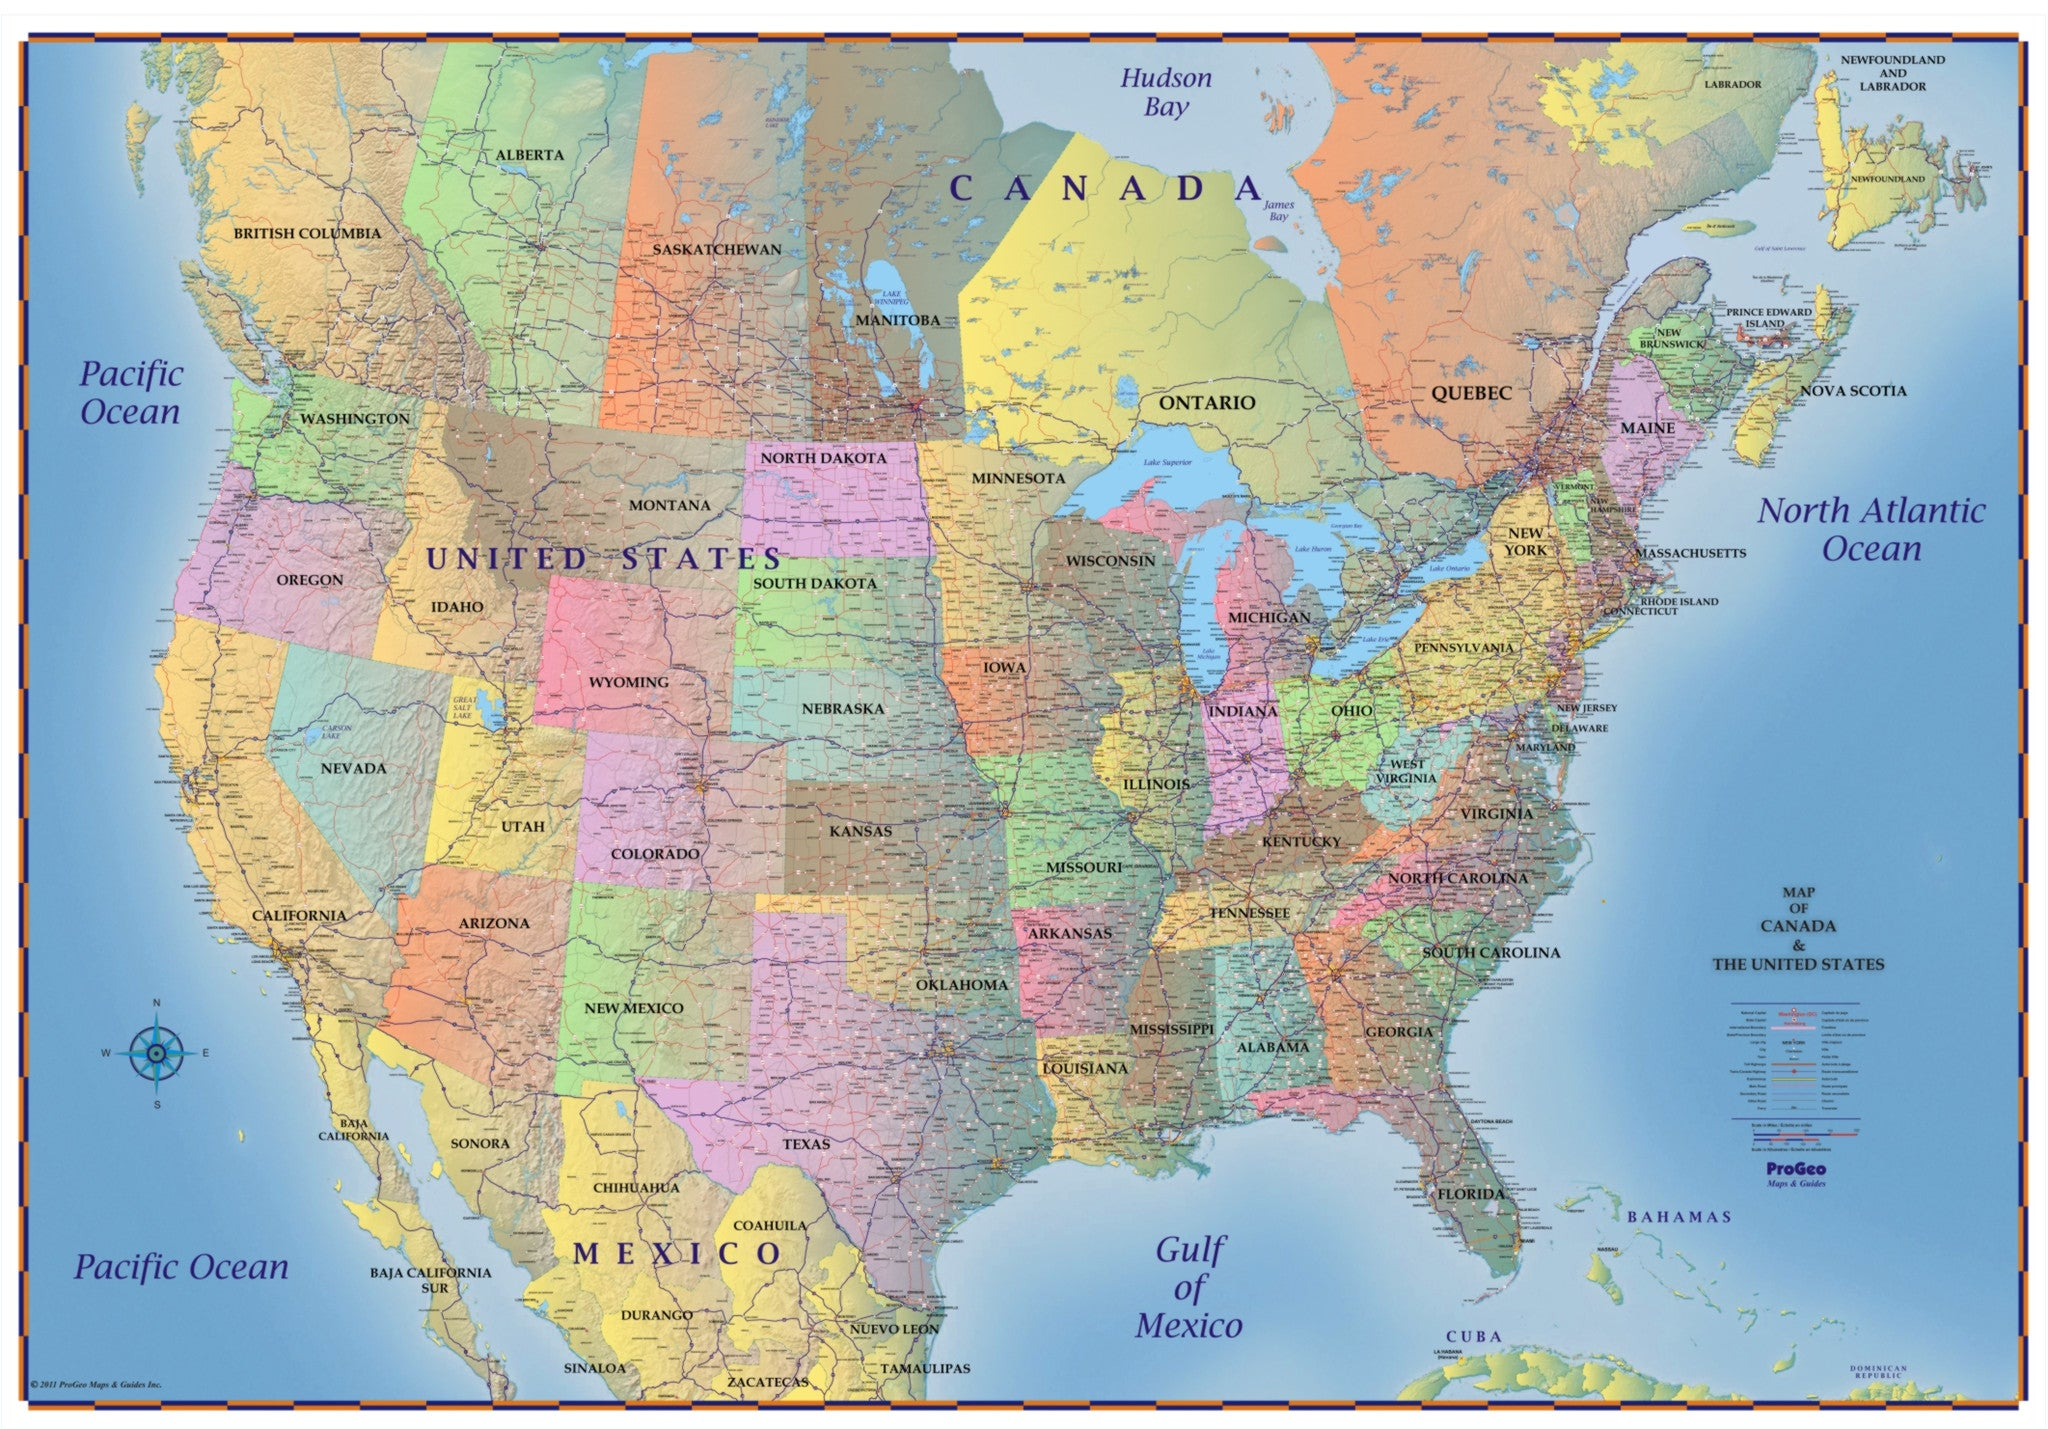 Western USA Wall Map Zoom See A Close Up Of The US Interstate Map - Map canada and us